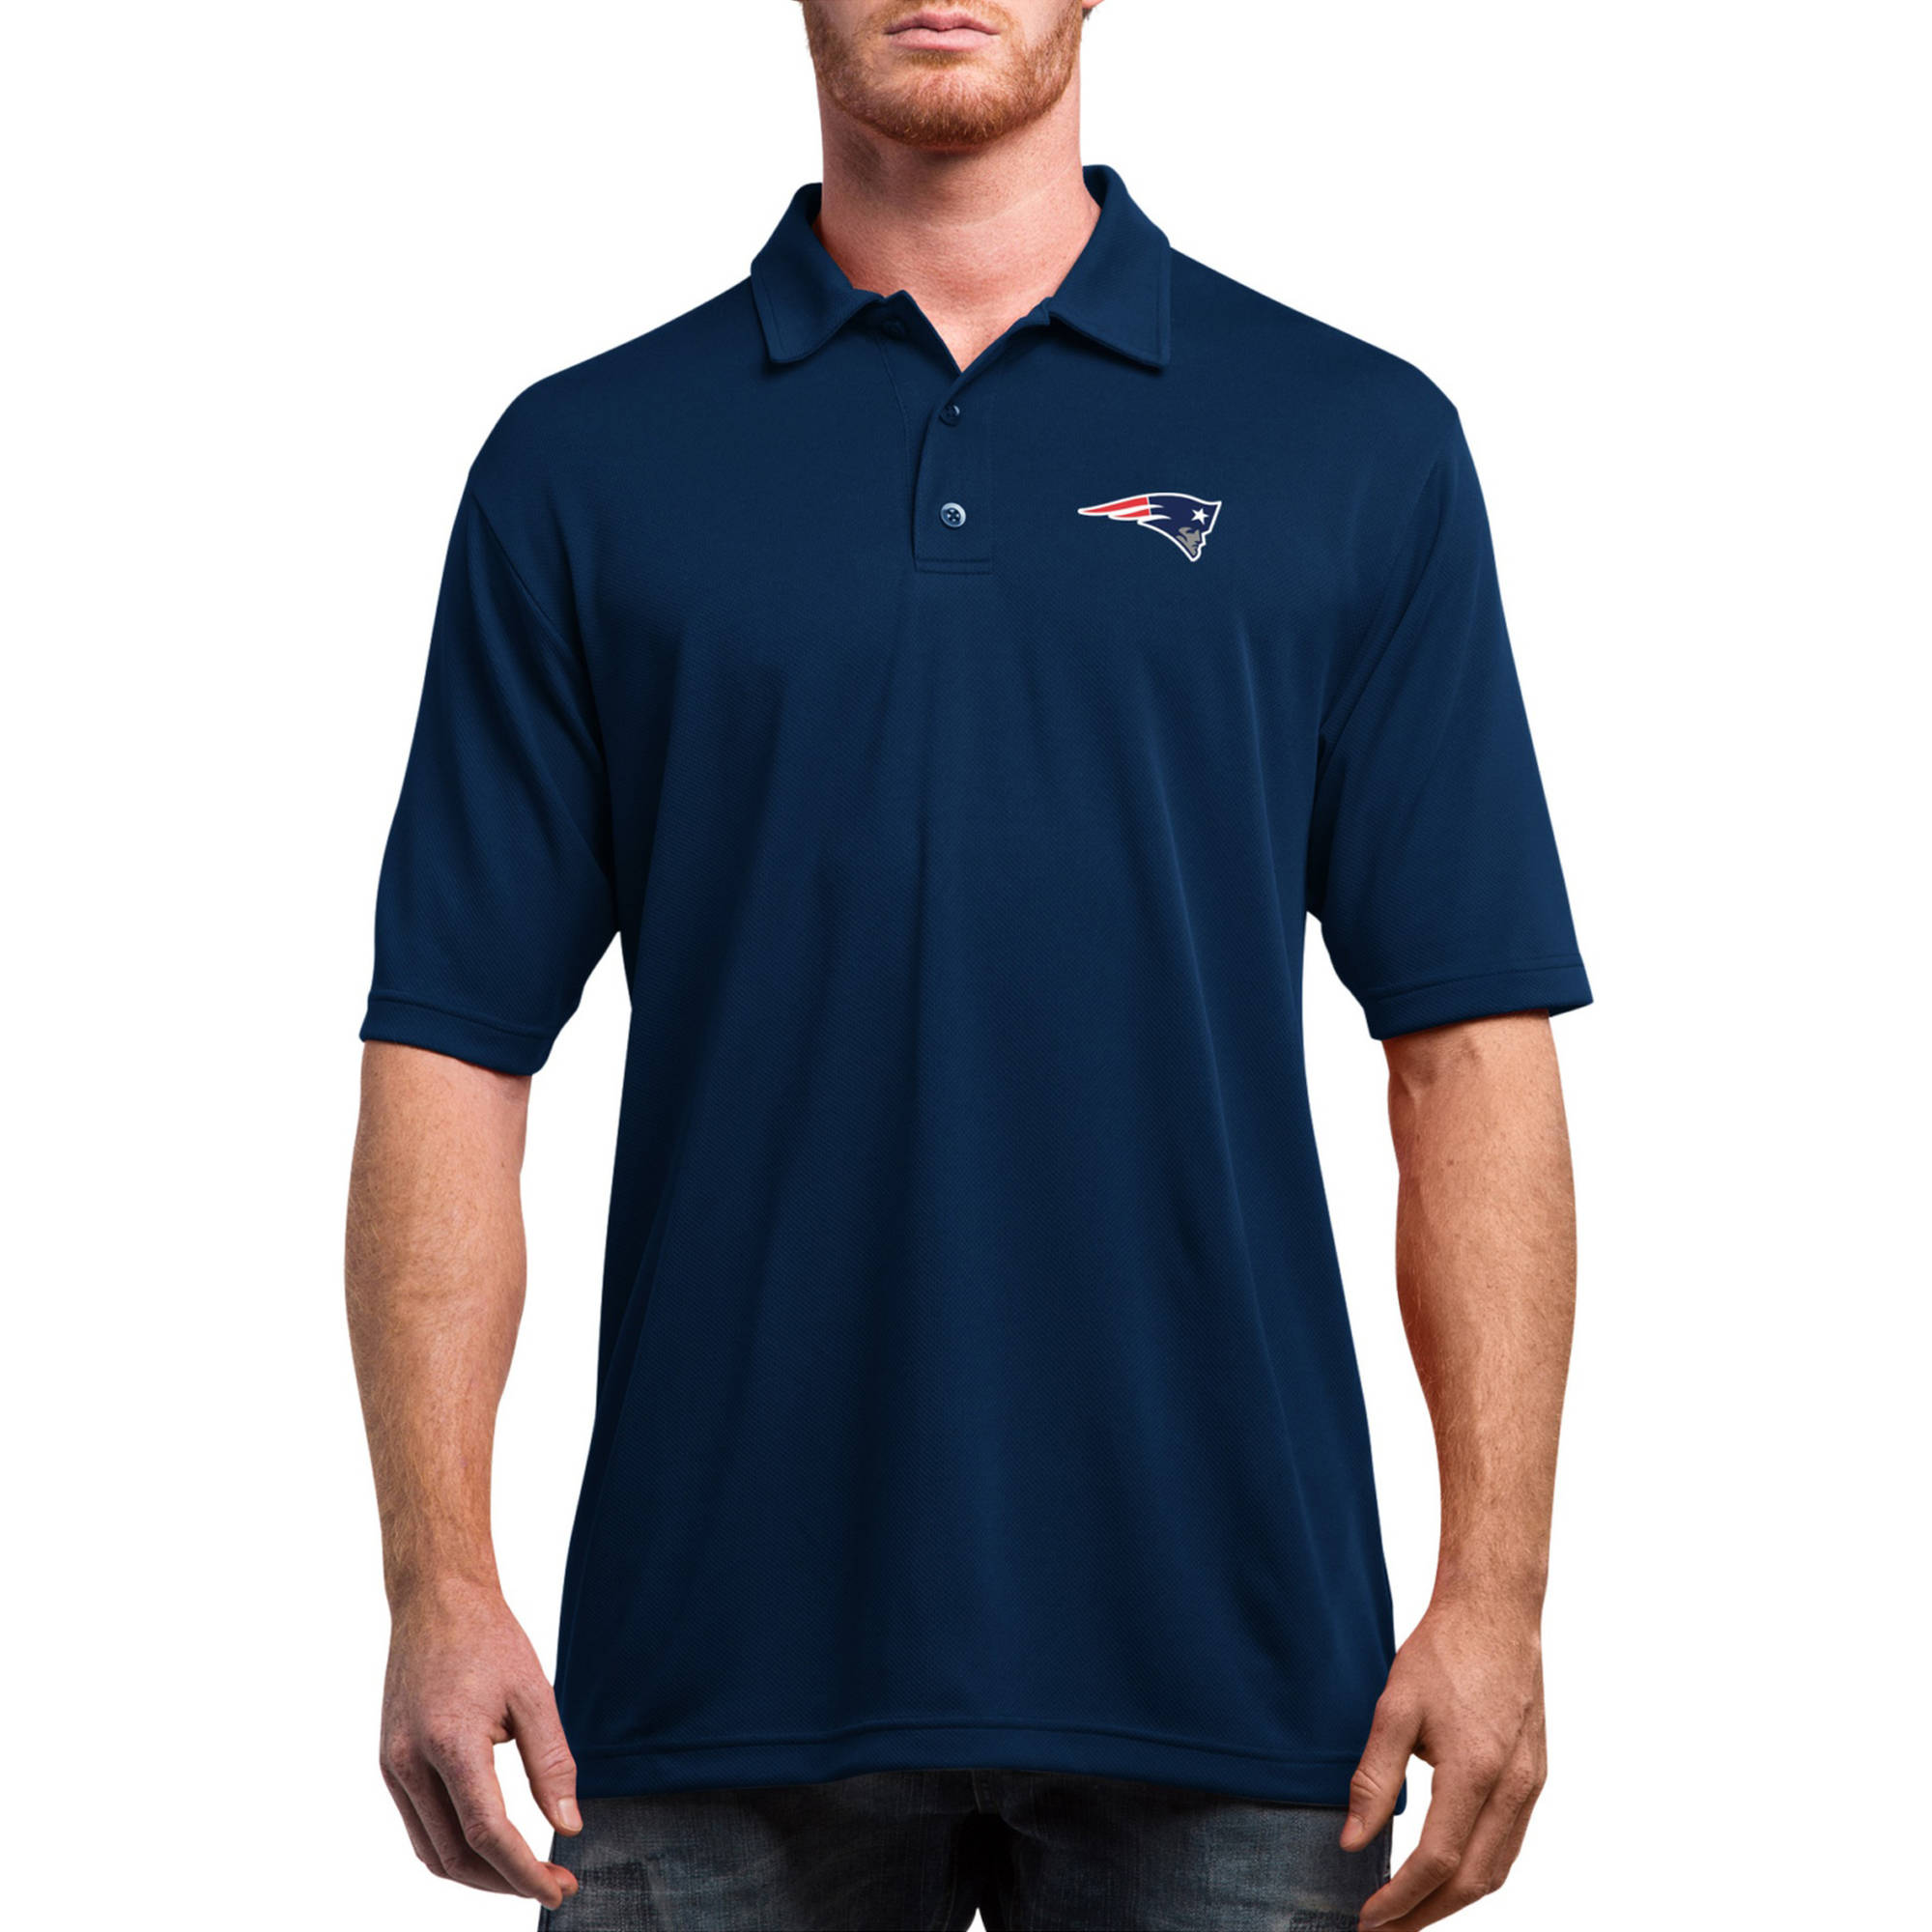 NFL New England Patriots On to the Win Men's Short Sleeve Polo